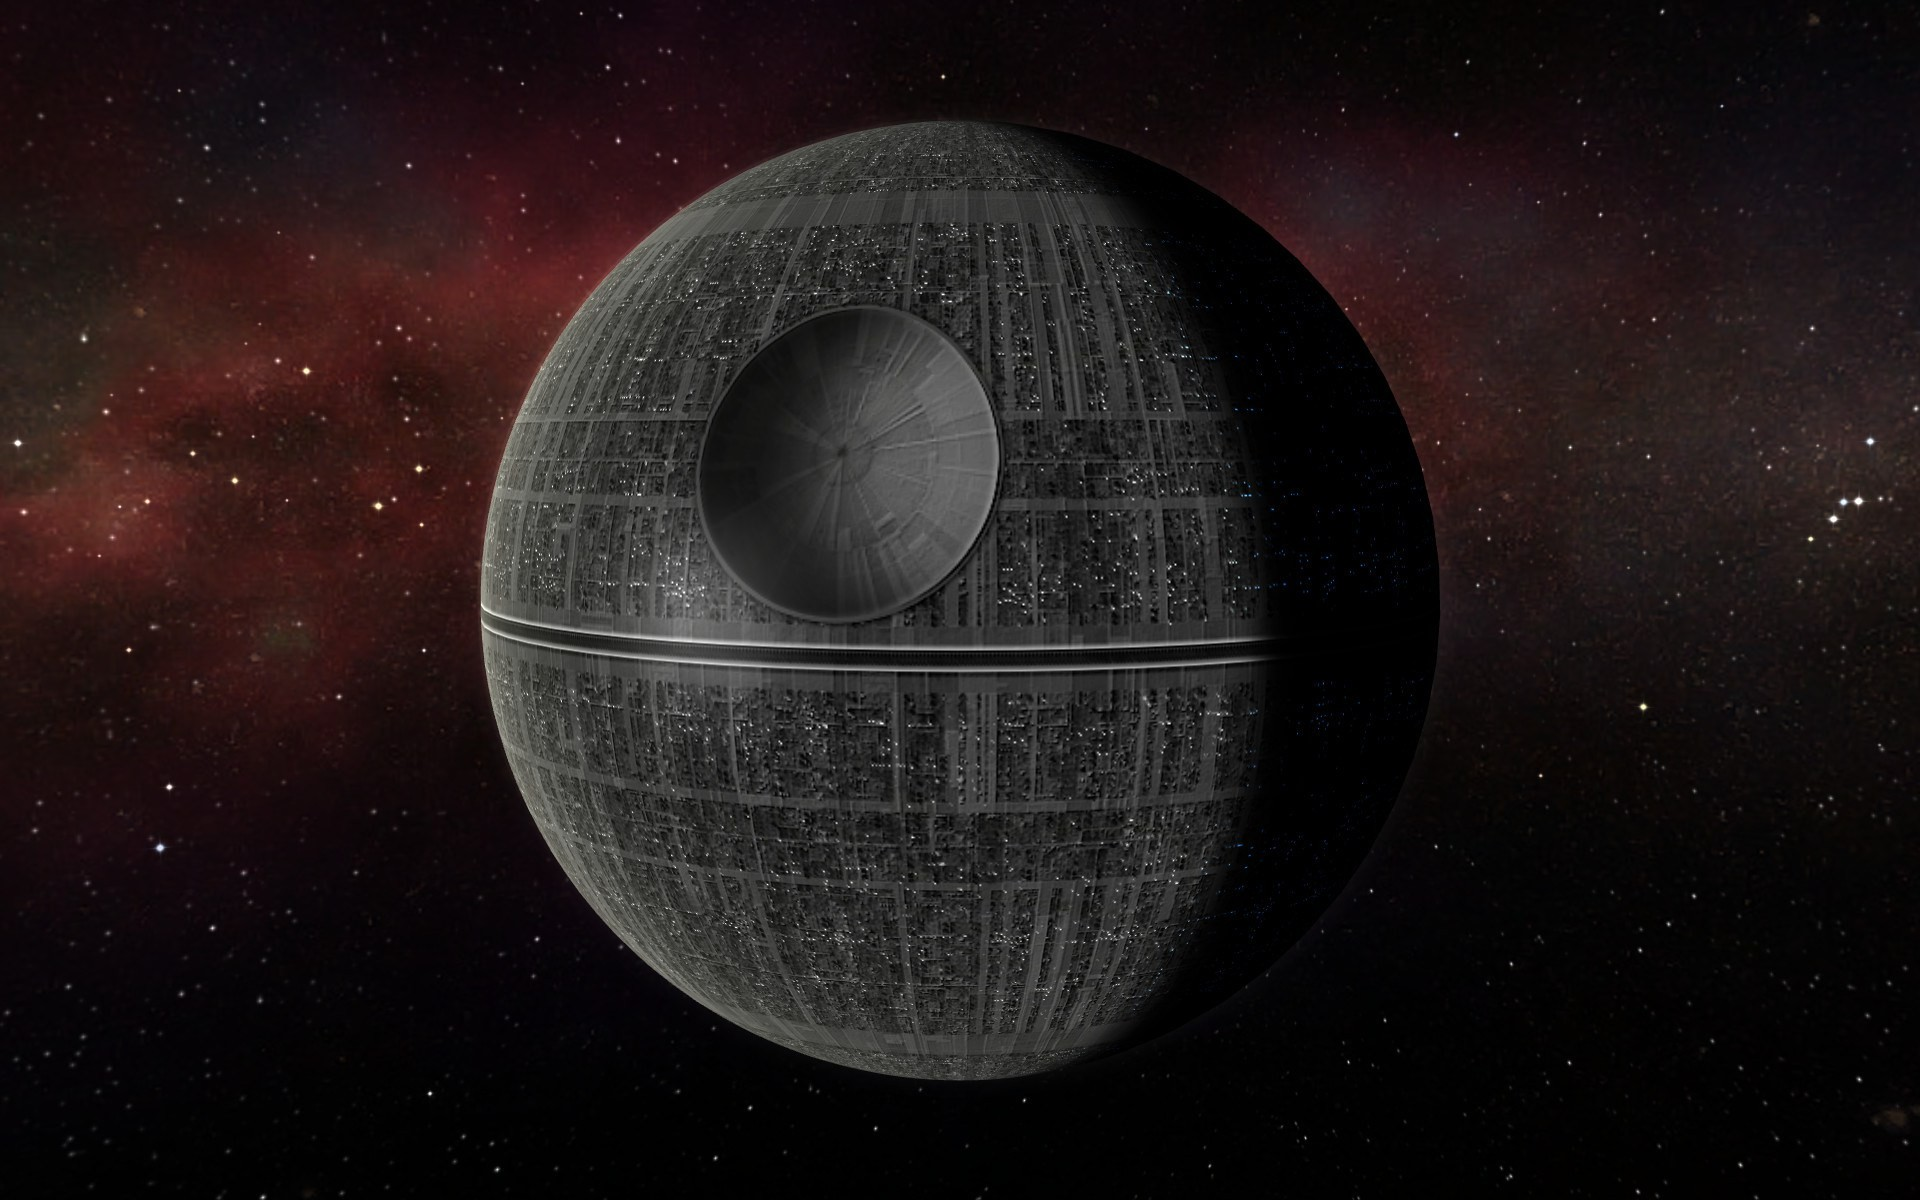 death star wallpaper,outer space,planet,astronomical object,space,atmosphere